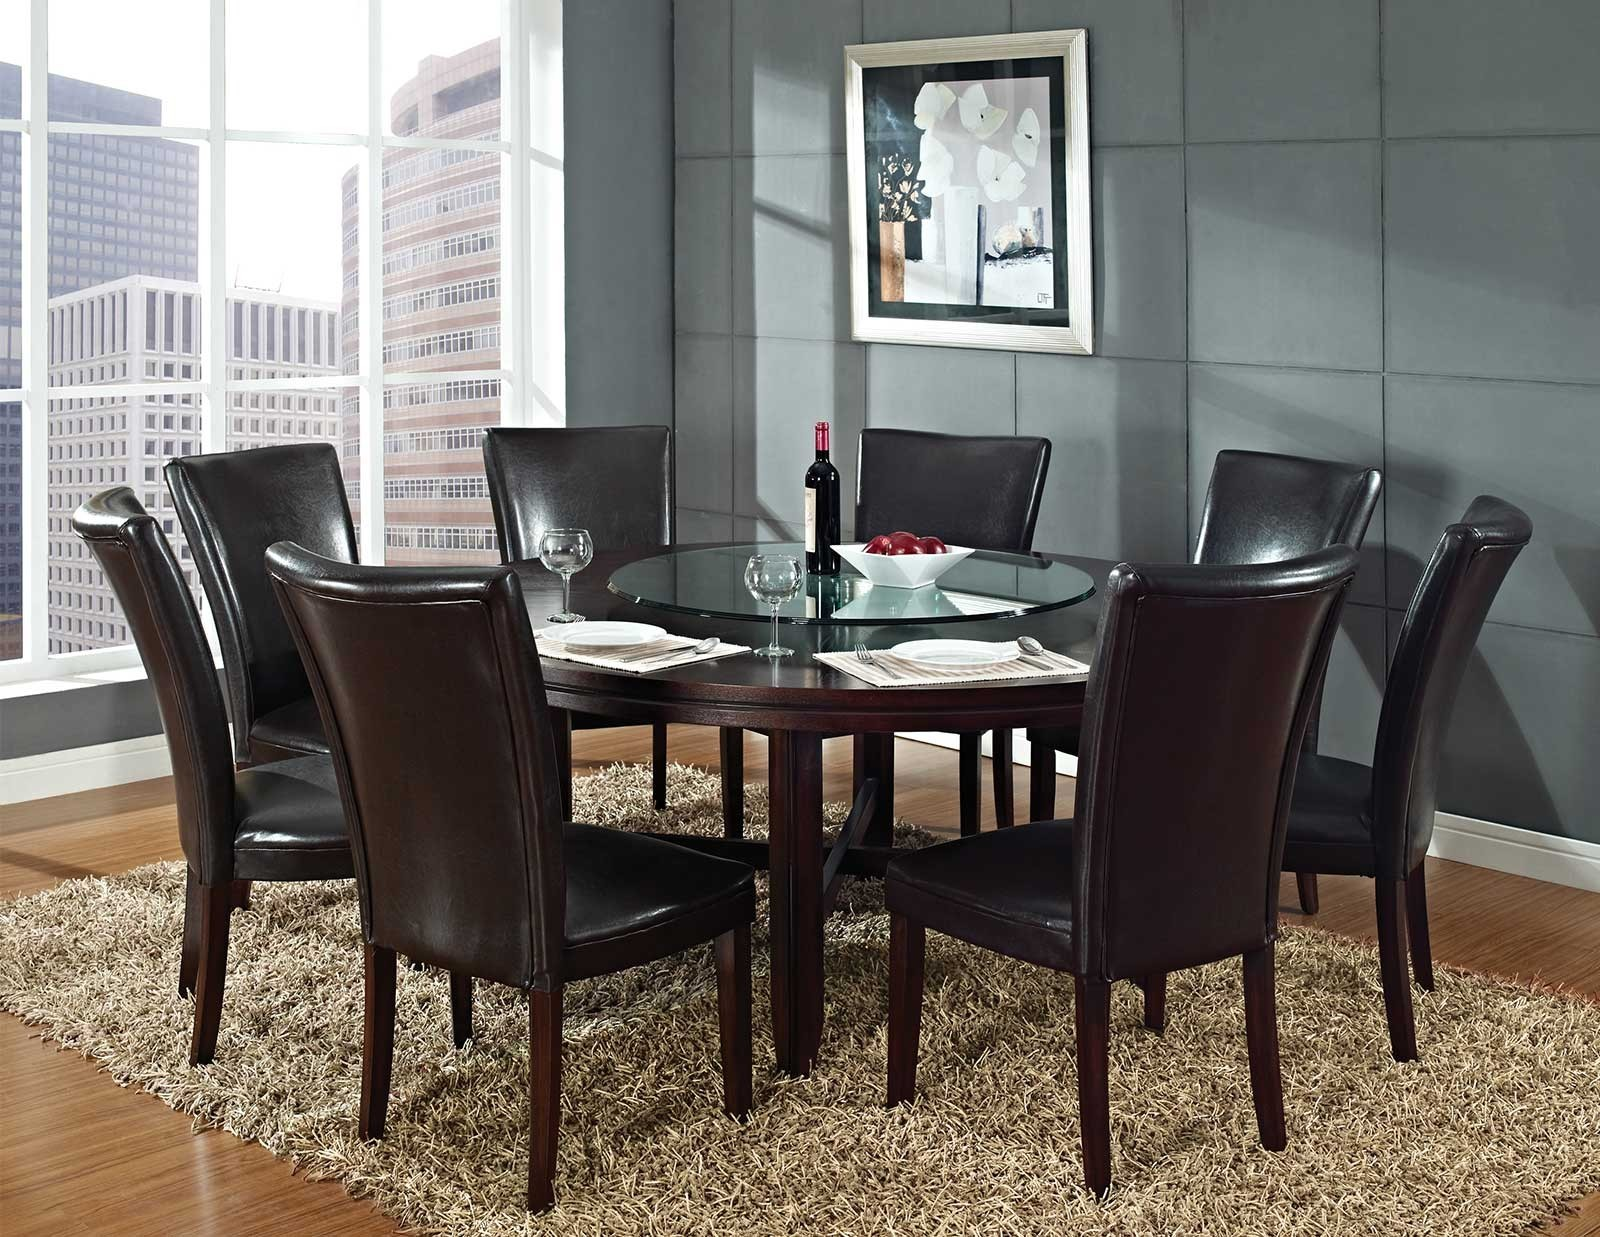 How To Choose Round Dining Room Table Set Pandora All Latest Blog